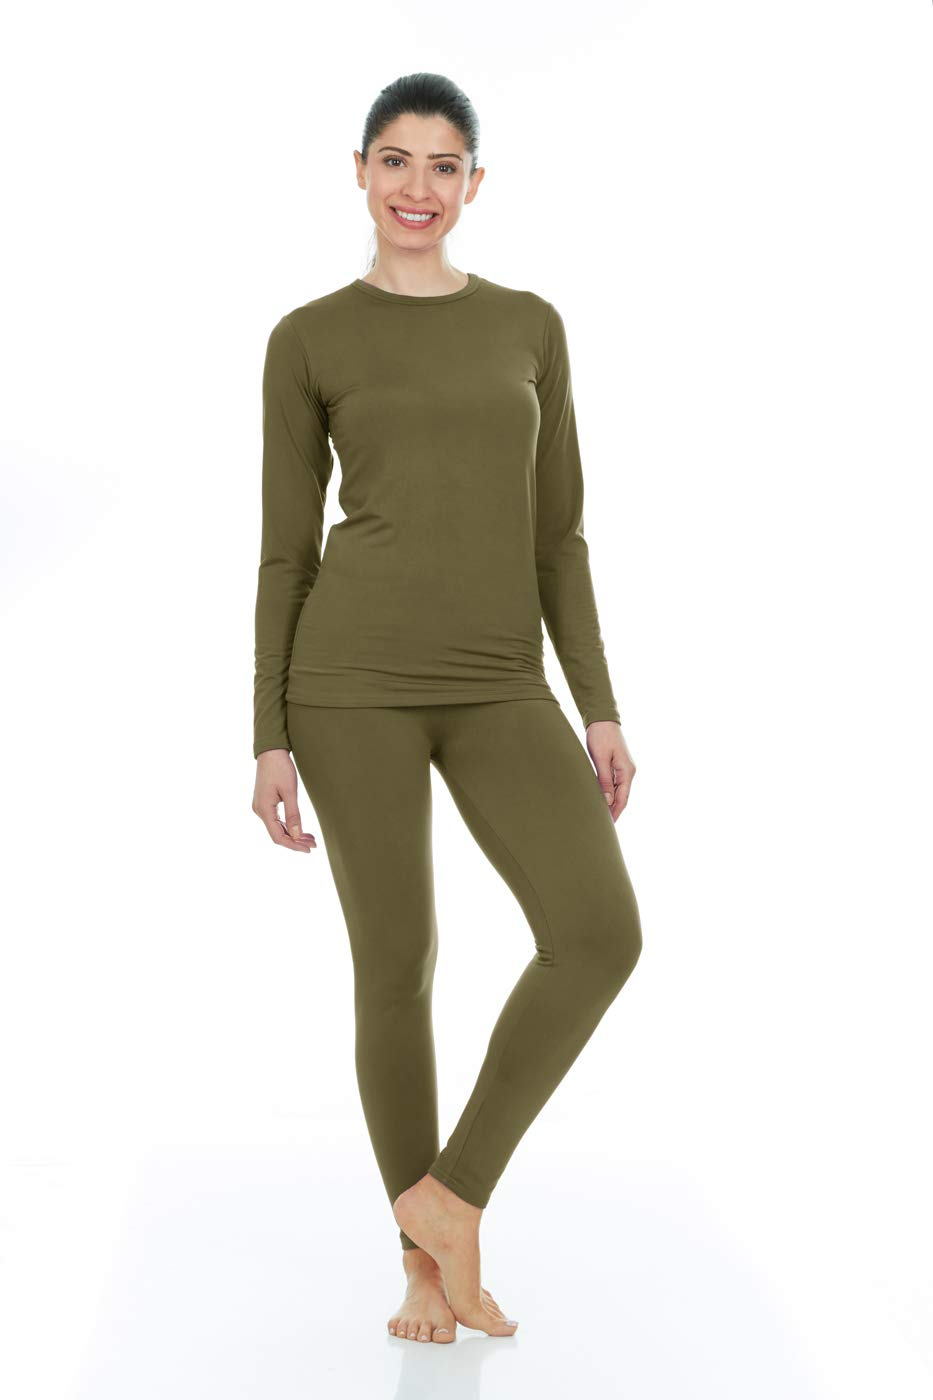 Thermajane Women's Ultra Soft Thermal Underwear Long Johns Set with Fleece Lined (XX-Small, Green)